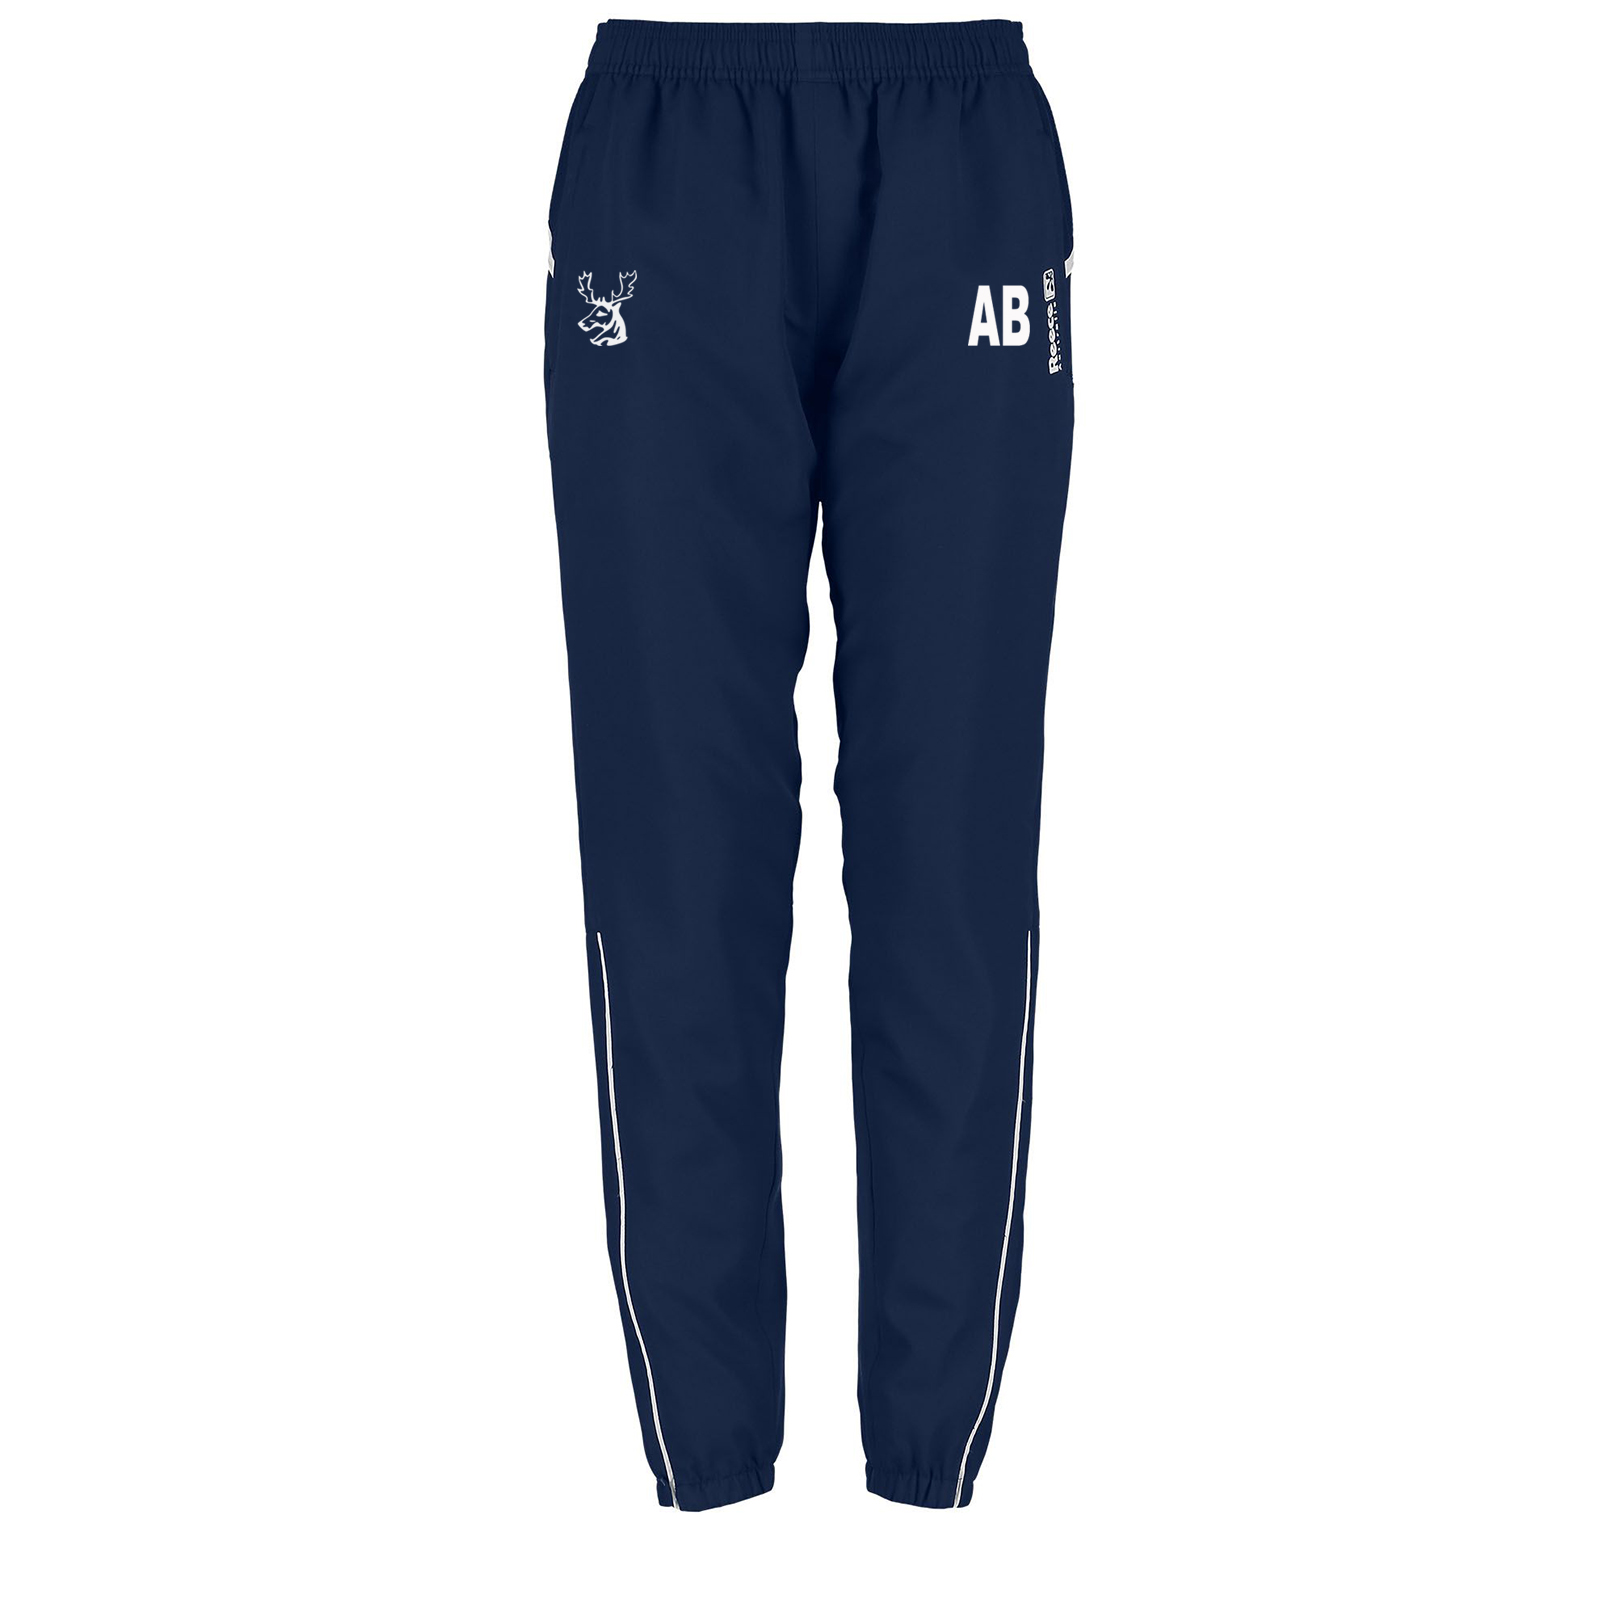 pants-ladies-navy-initials